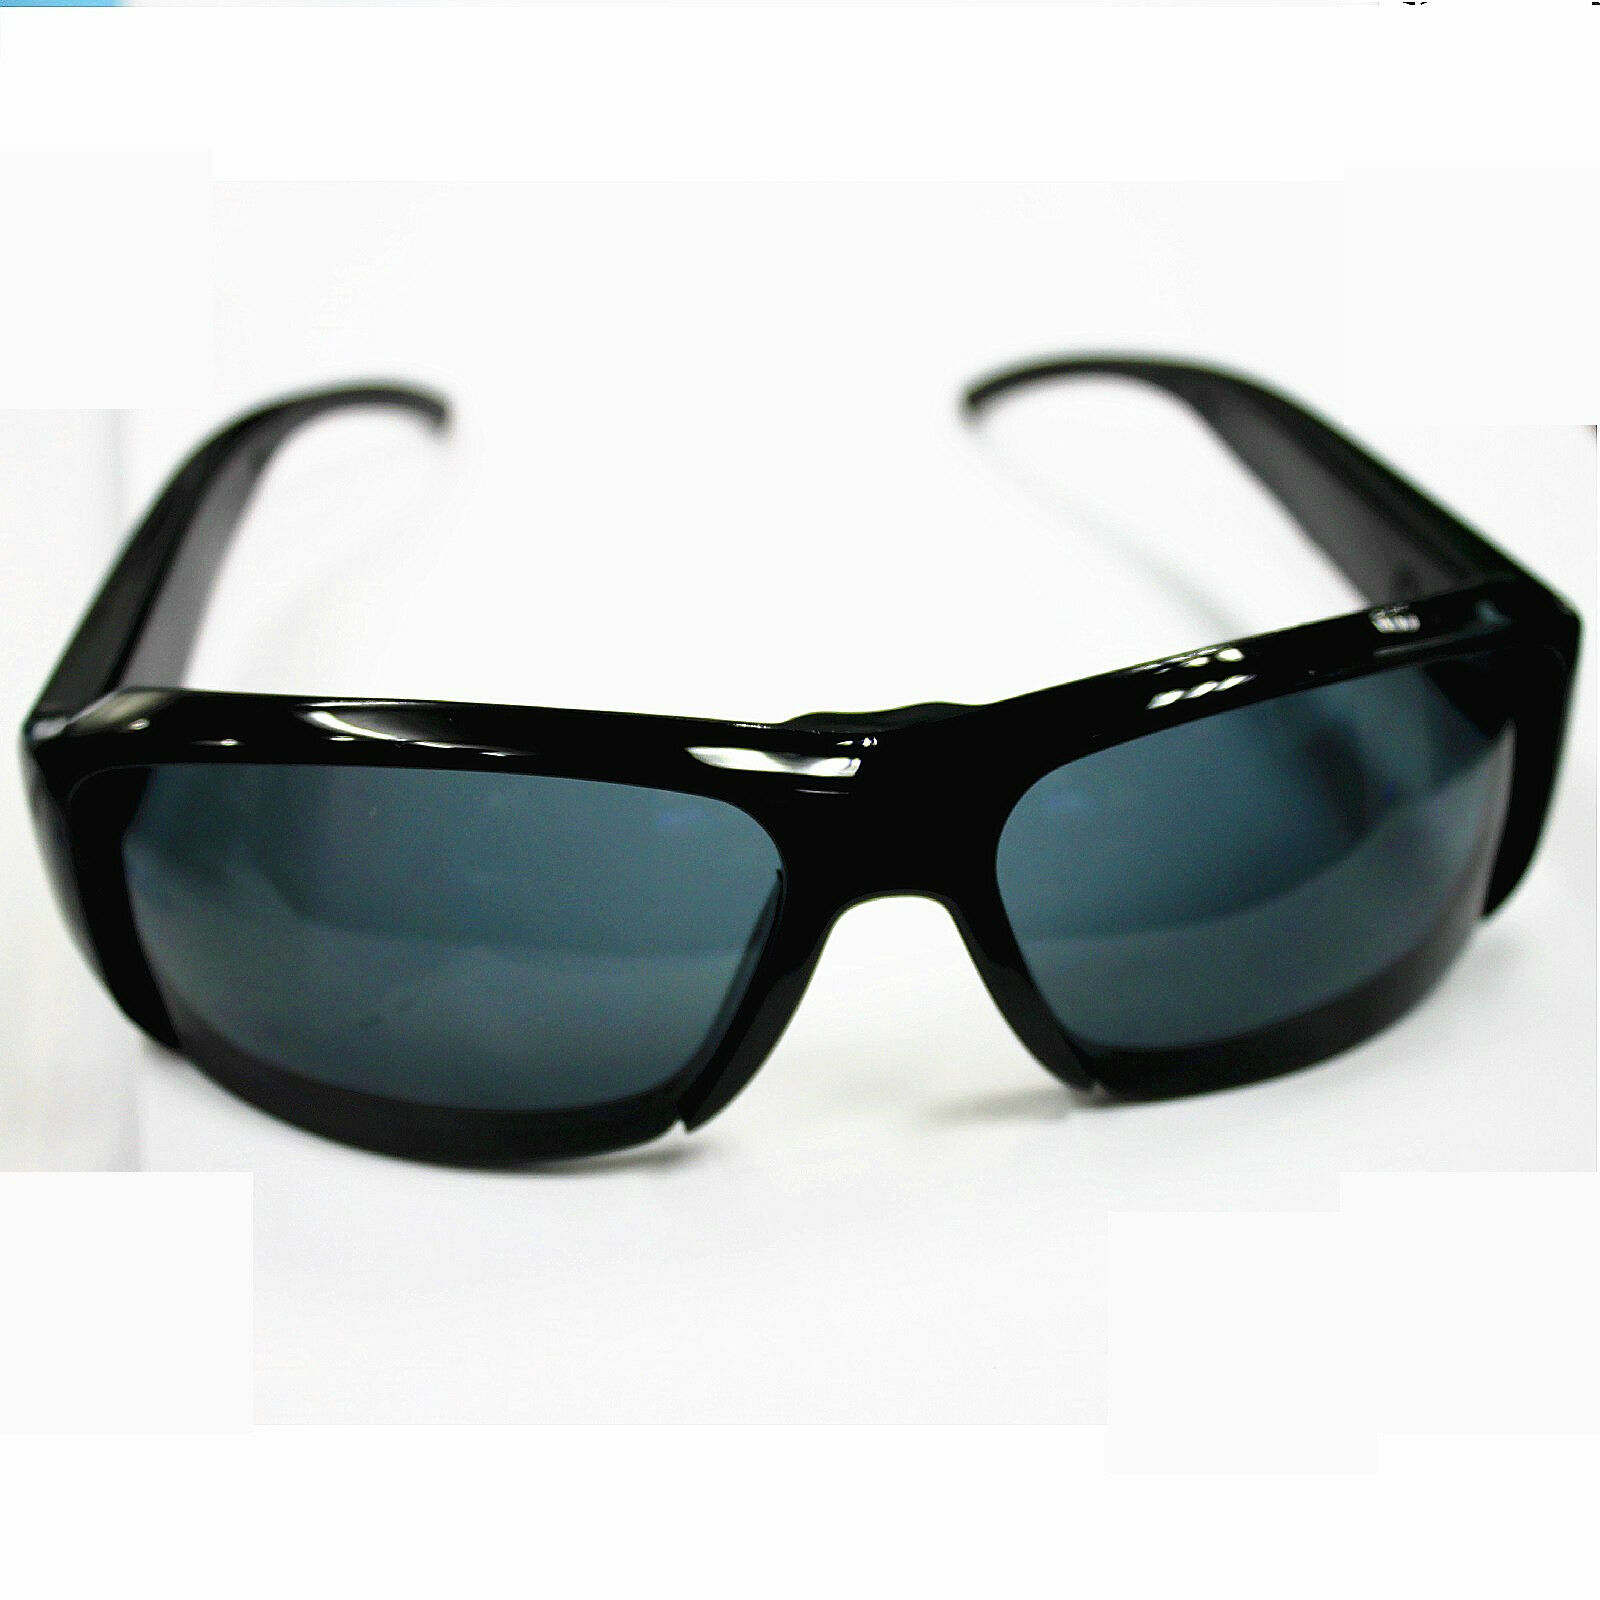 1080p hd camera eyewear manual